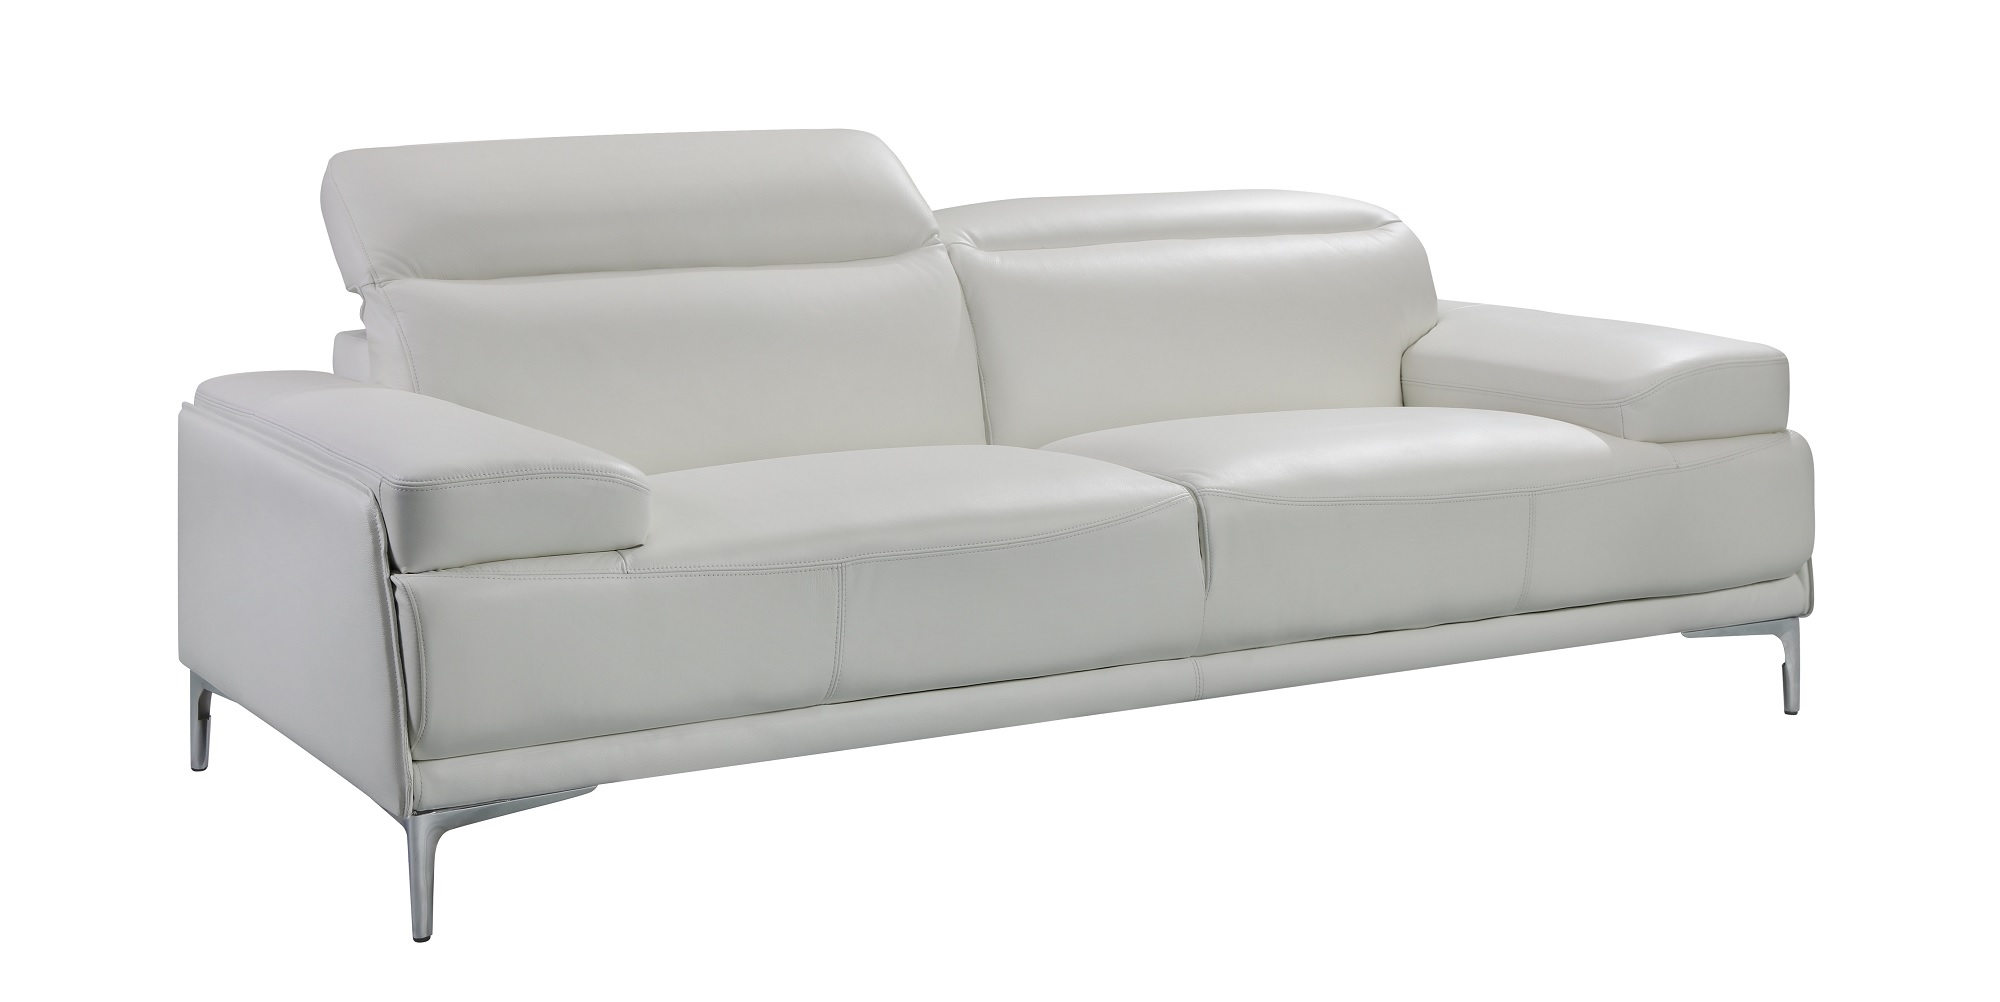 Tremendous Nicolo White Sofa Set Forskolin Free Trial Chair Design Images Forskolin Free Trialorg